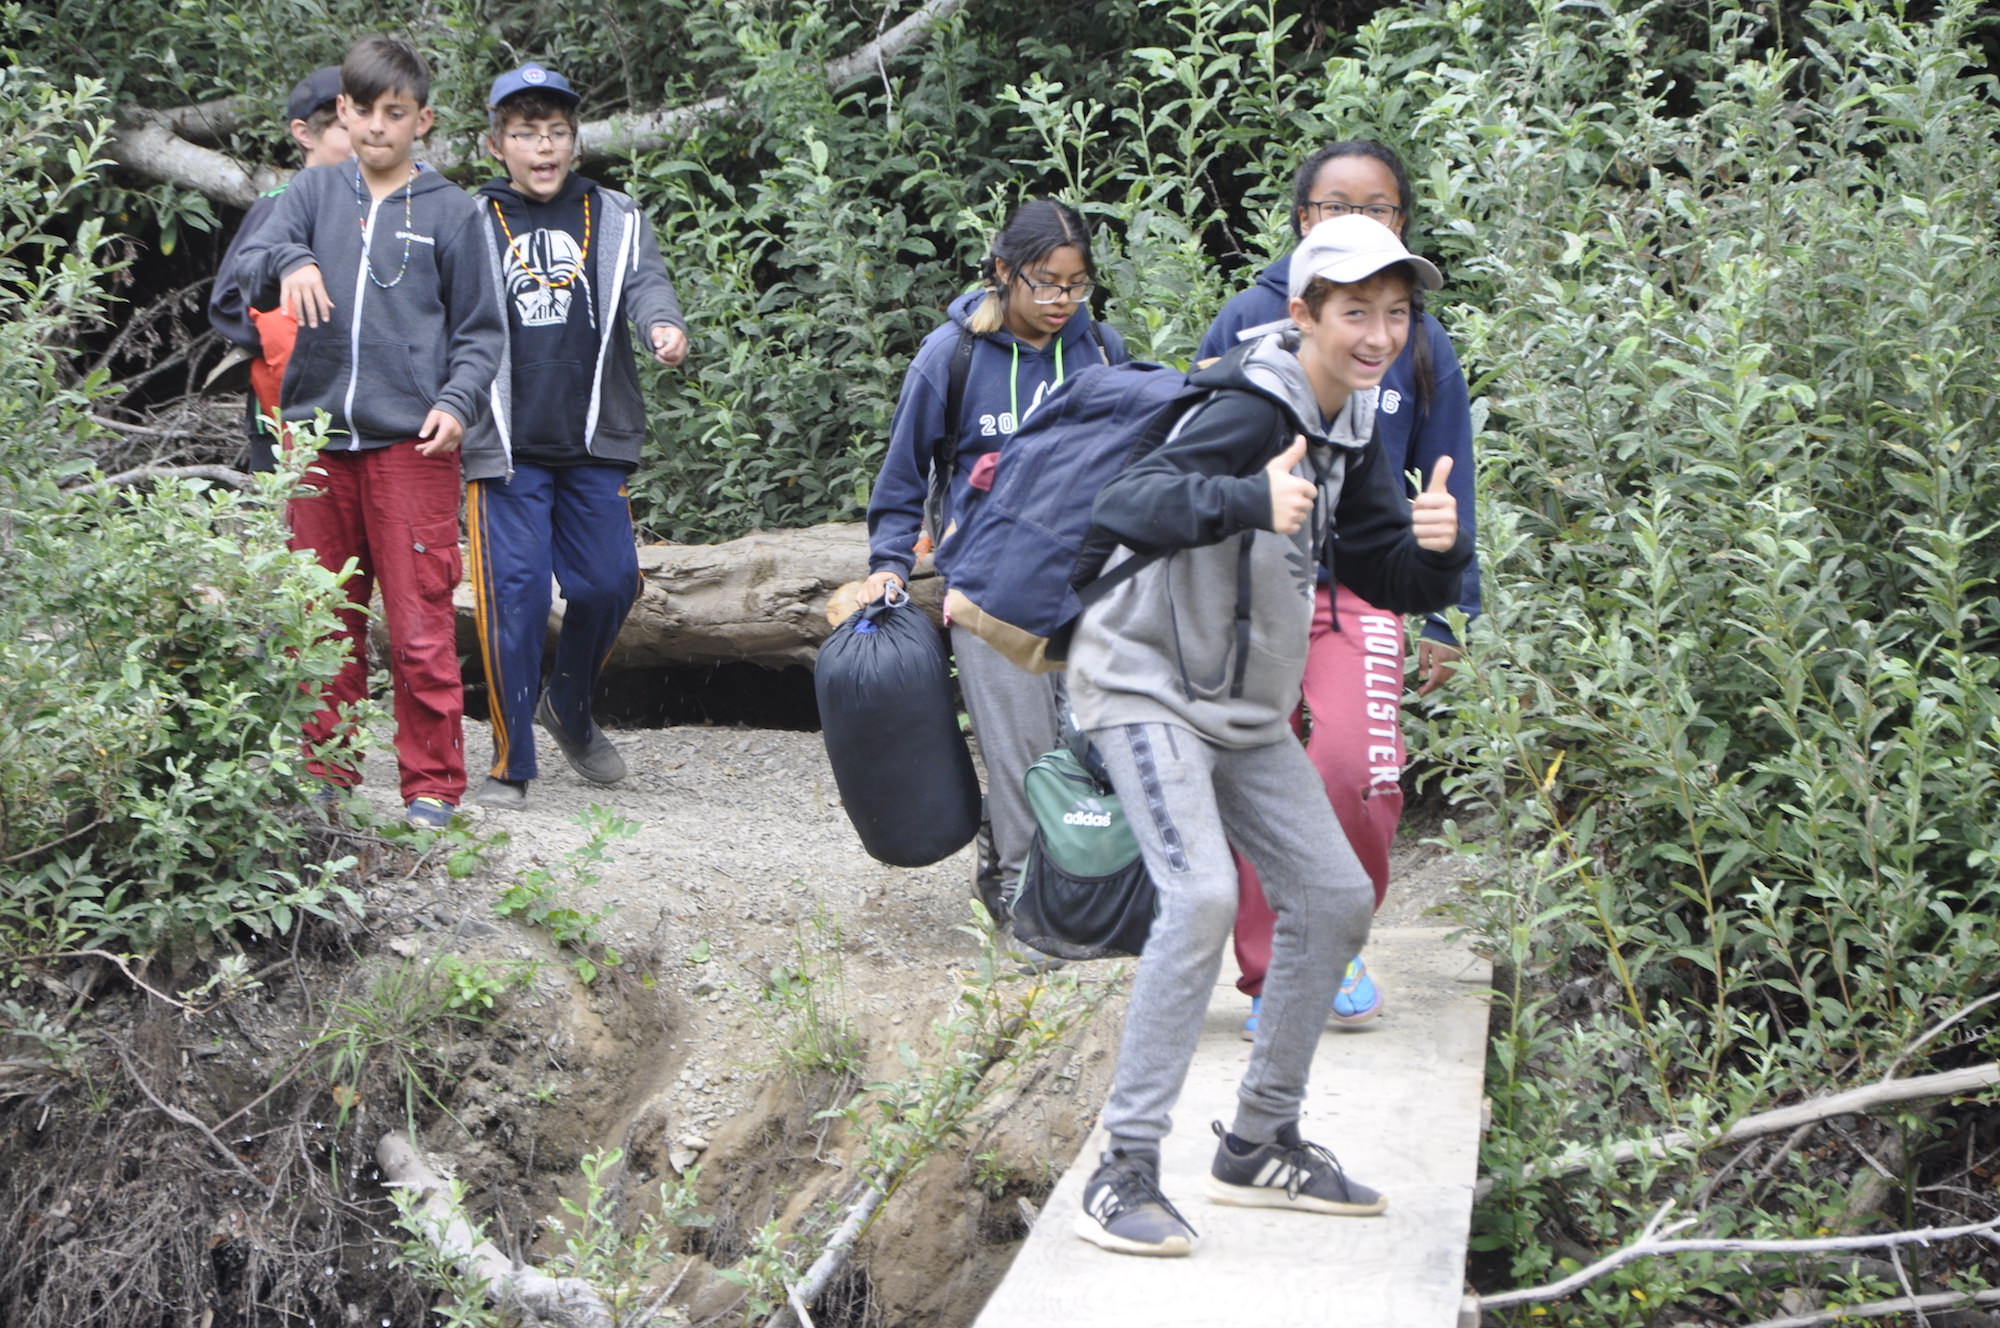 camping trip for students in san fran.JPG